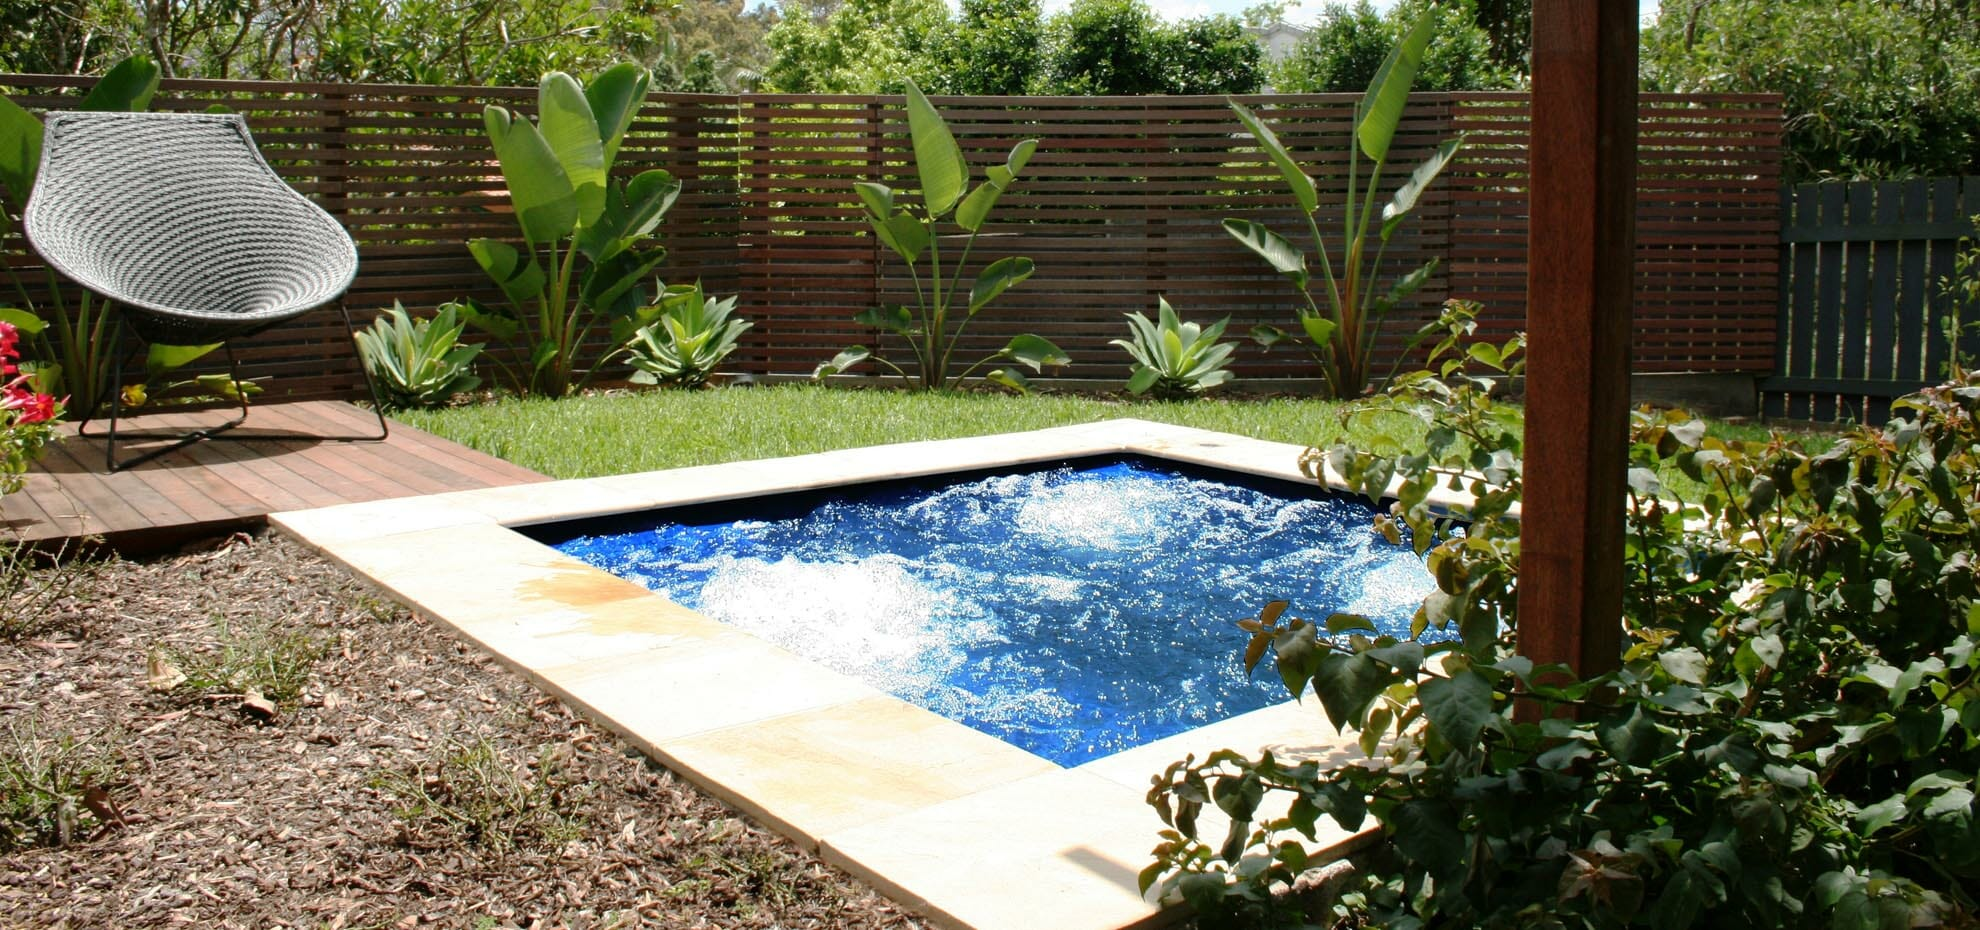 Sorrento Fiberglass pool with coping stone by Leisure Pools